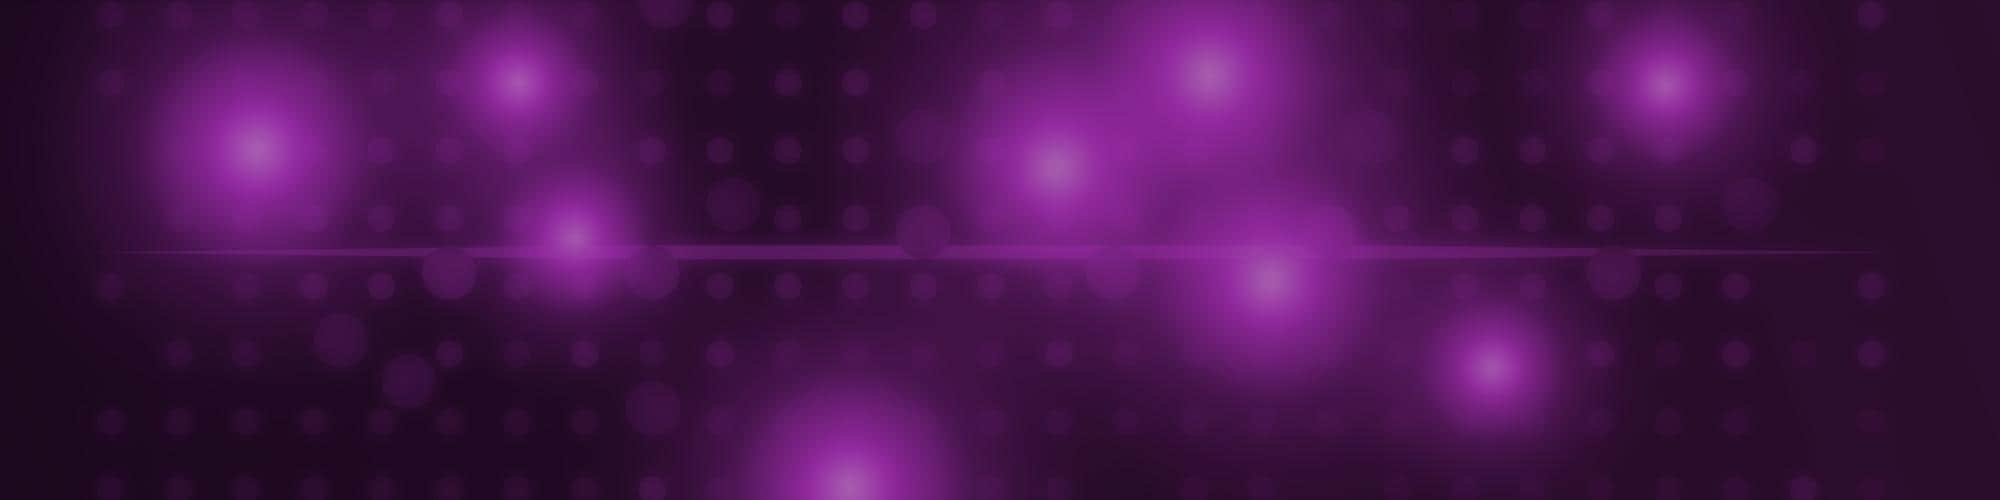 Purple epiphany linear chart abstract